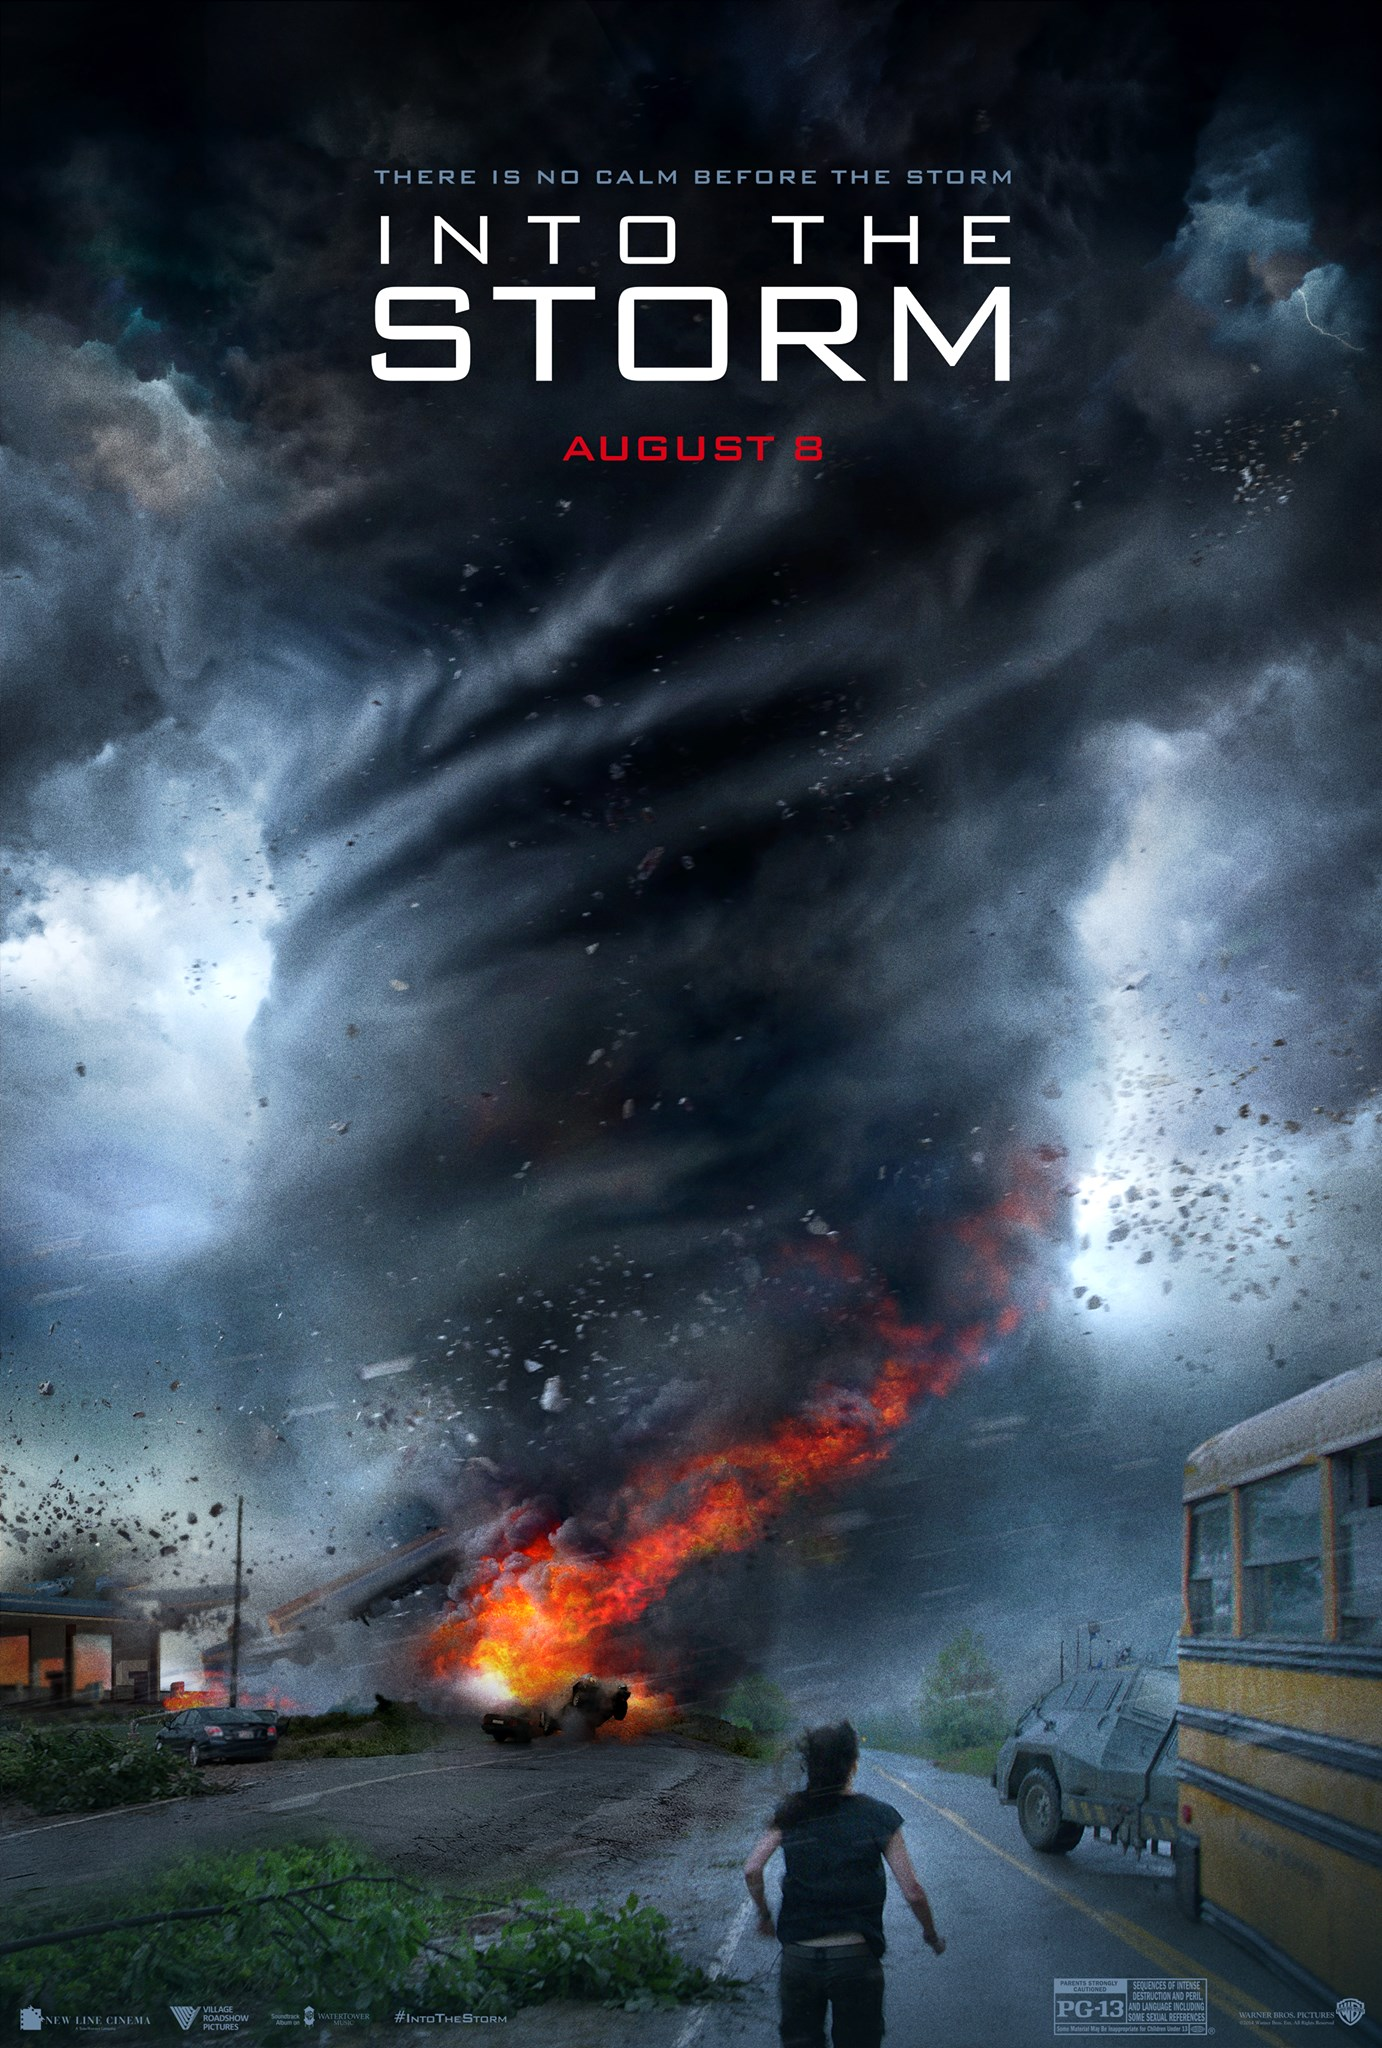 INTOTHESTORM Poster Tornadoes Terrorize in Into the Storm Trailer